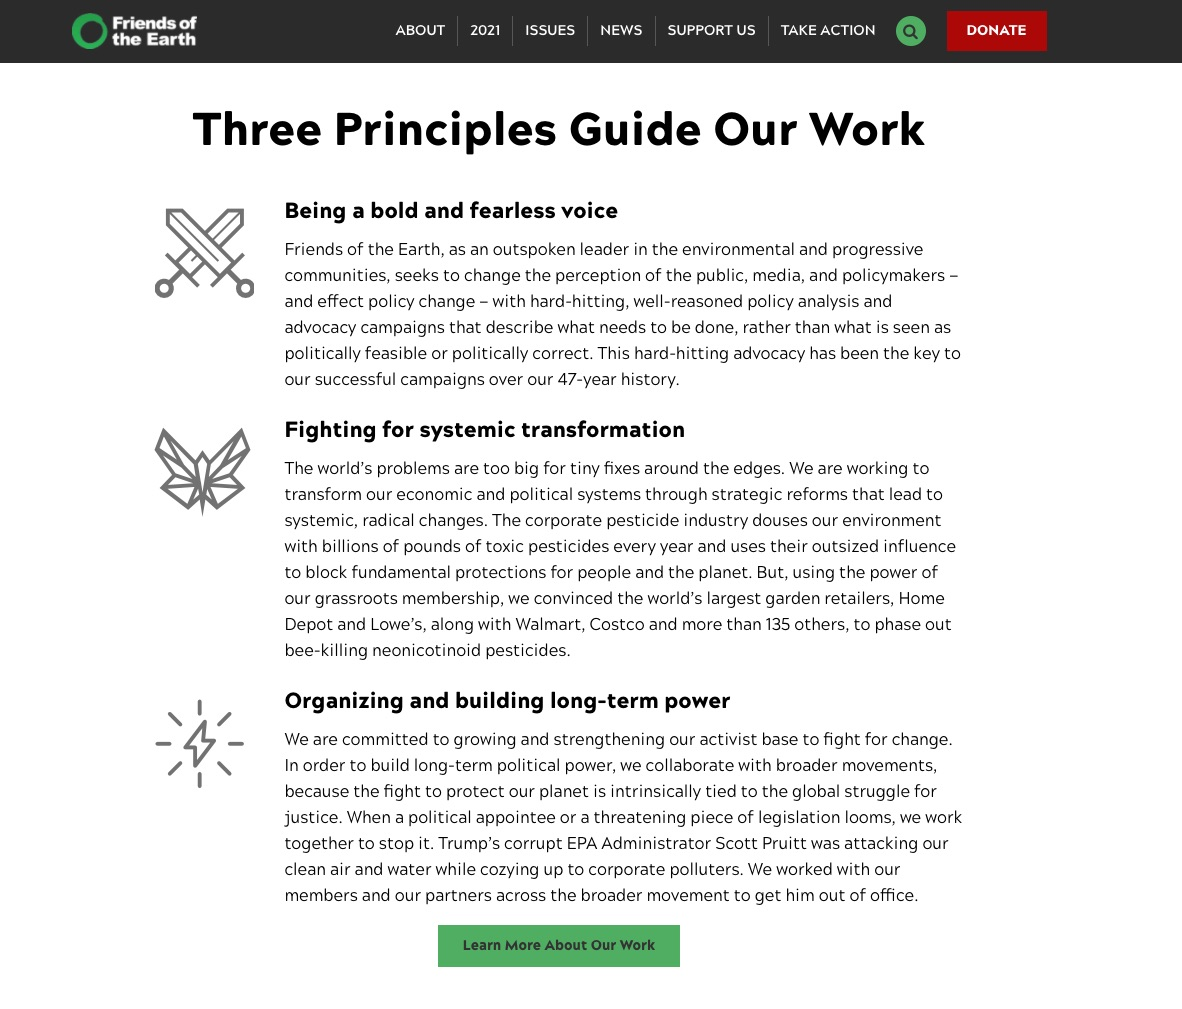 Friends of the earth guiding principles